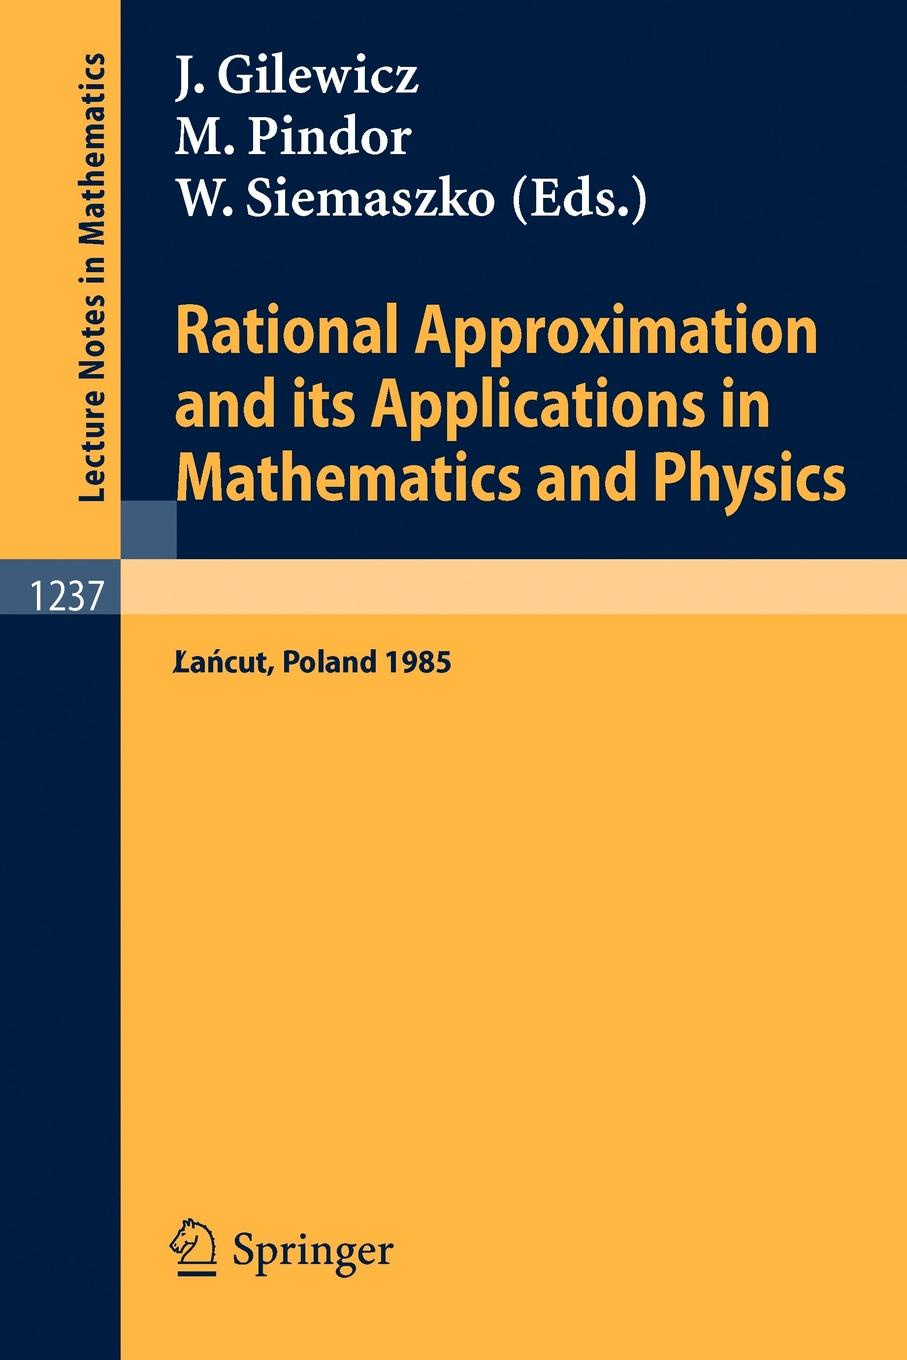 Rational Approximation and its Applications in Mathematics and Physics. Proceedings, Lancut 1985